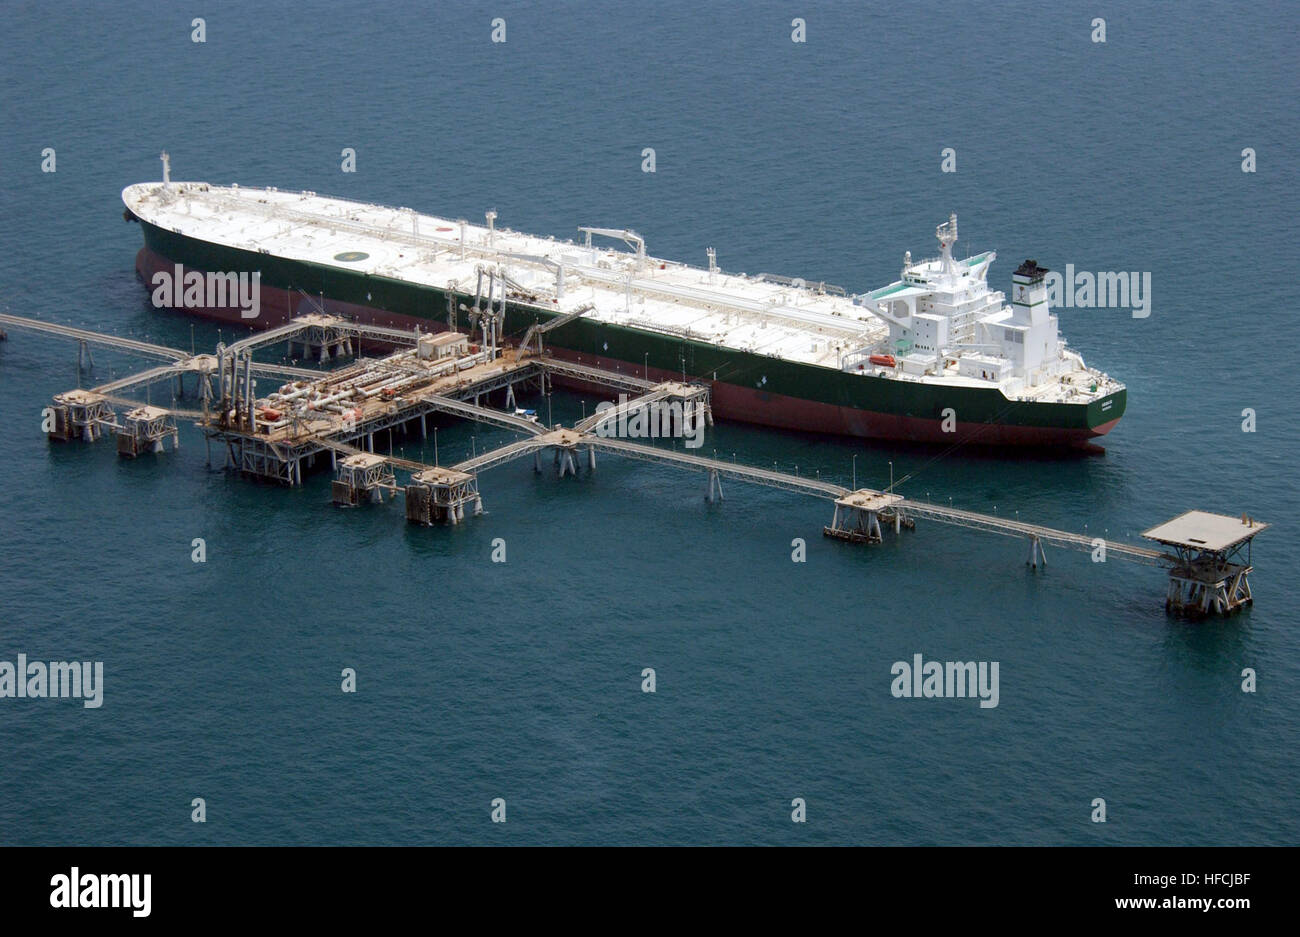 030629-N-4790M-001 Central Command Area of Responsibility (Jun. 29, 2003) -- Commercial oil tanker AbQaiq readies - Stock Image